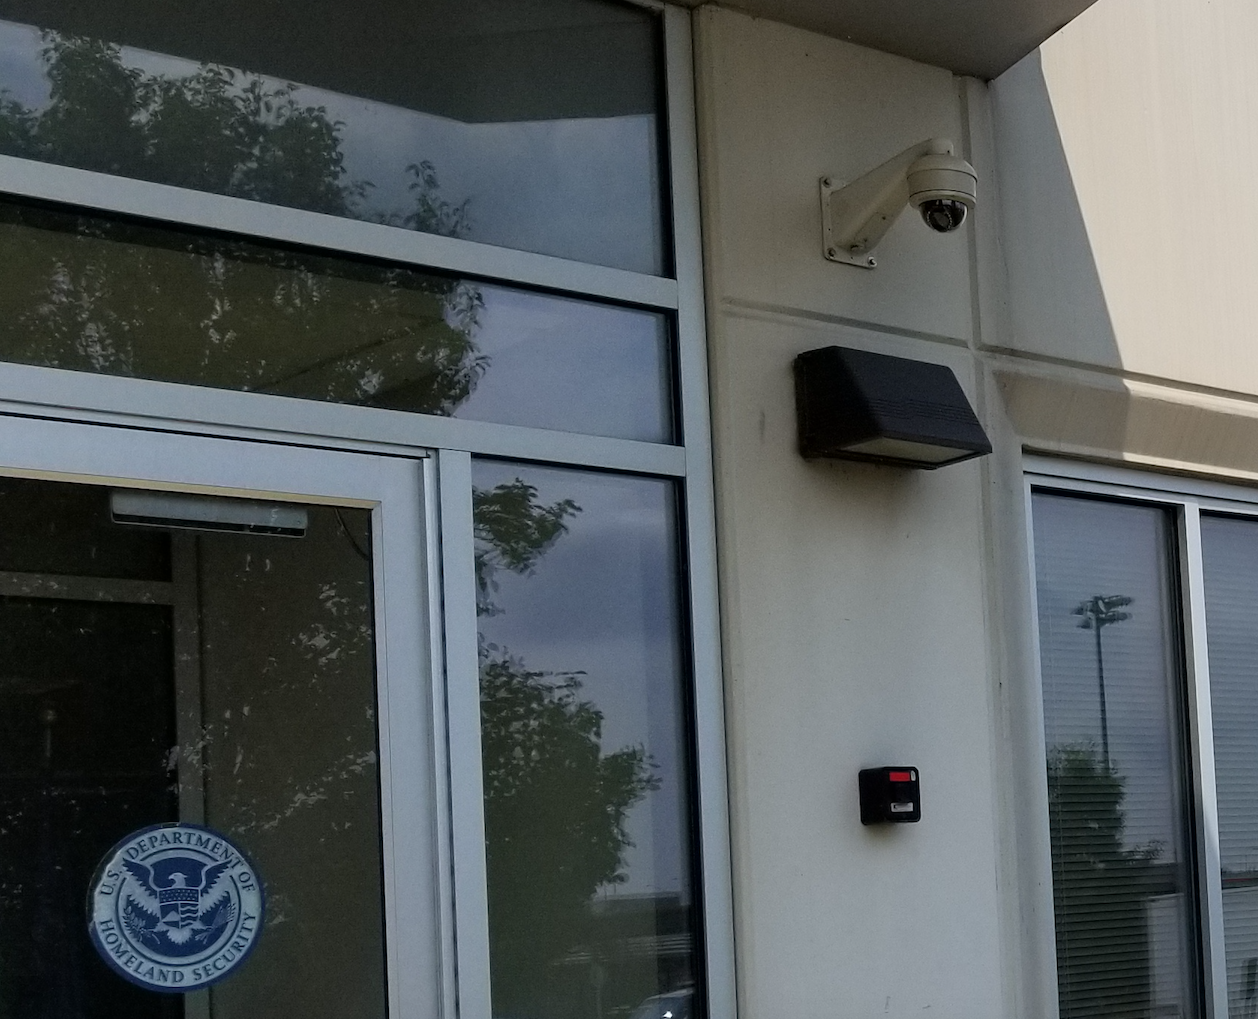 Department of Homeland Security, Rosemont, IL